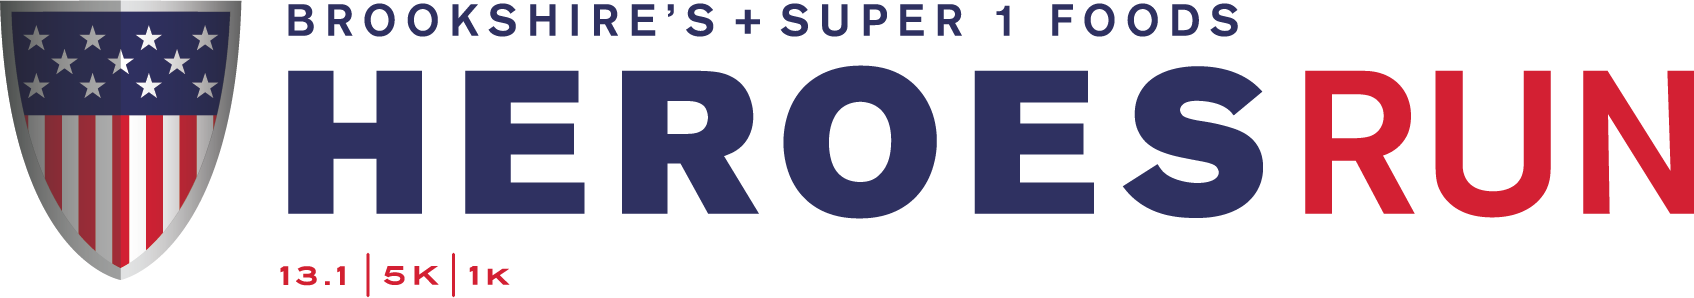 Brookshire's + Super 1 Foods Heroes Run logo